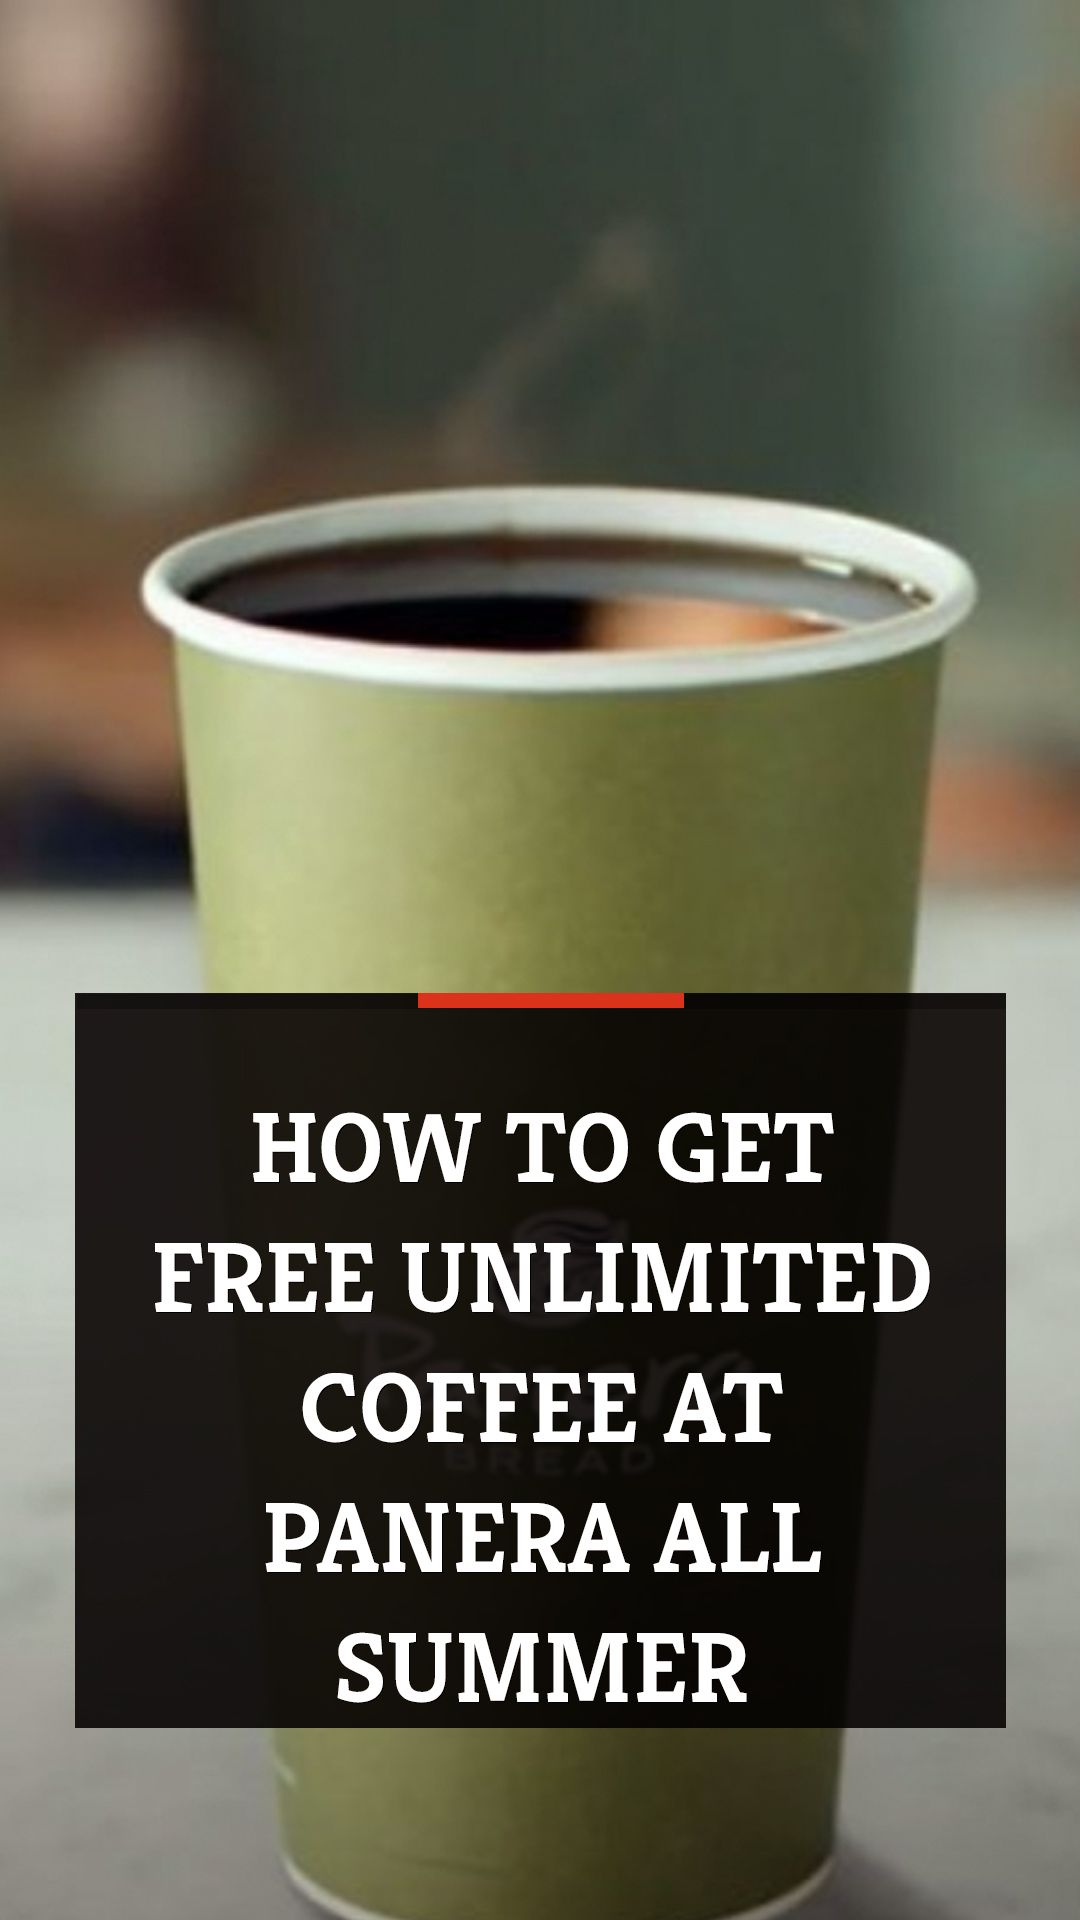 How to get free unlimited coffee at Panera all summer in